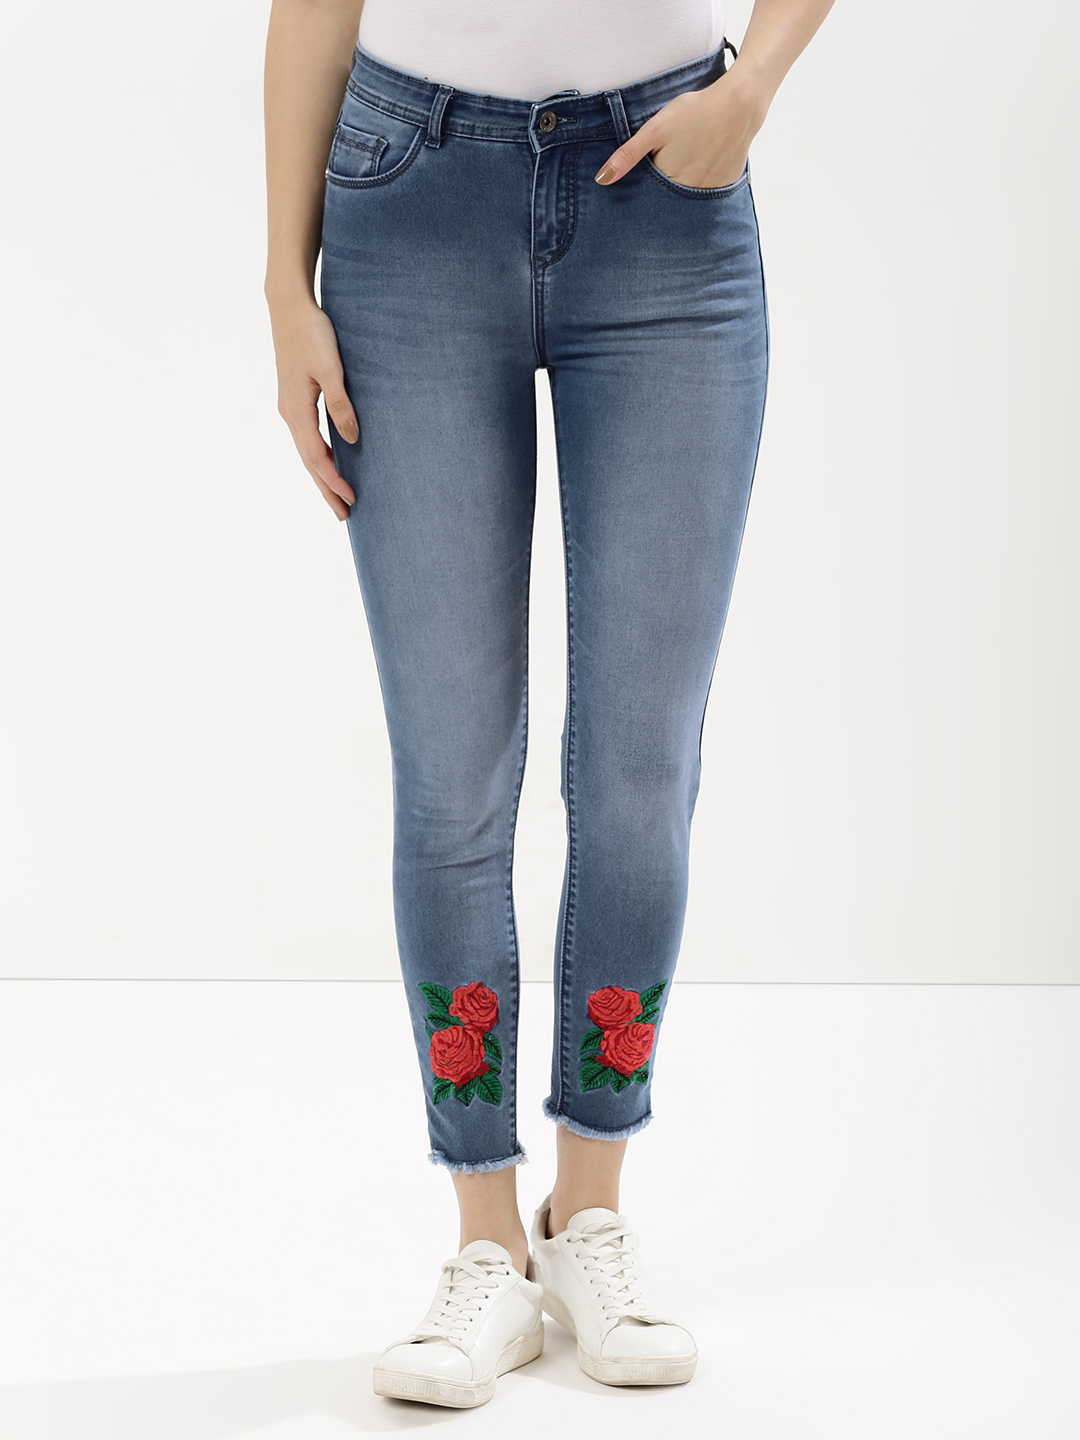 KOOVS Blue Washed Denims With Floral Embroidery 1